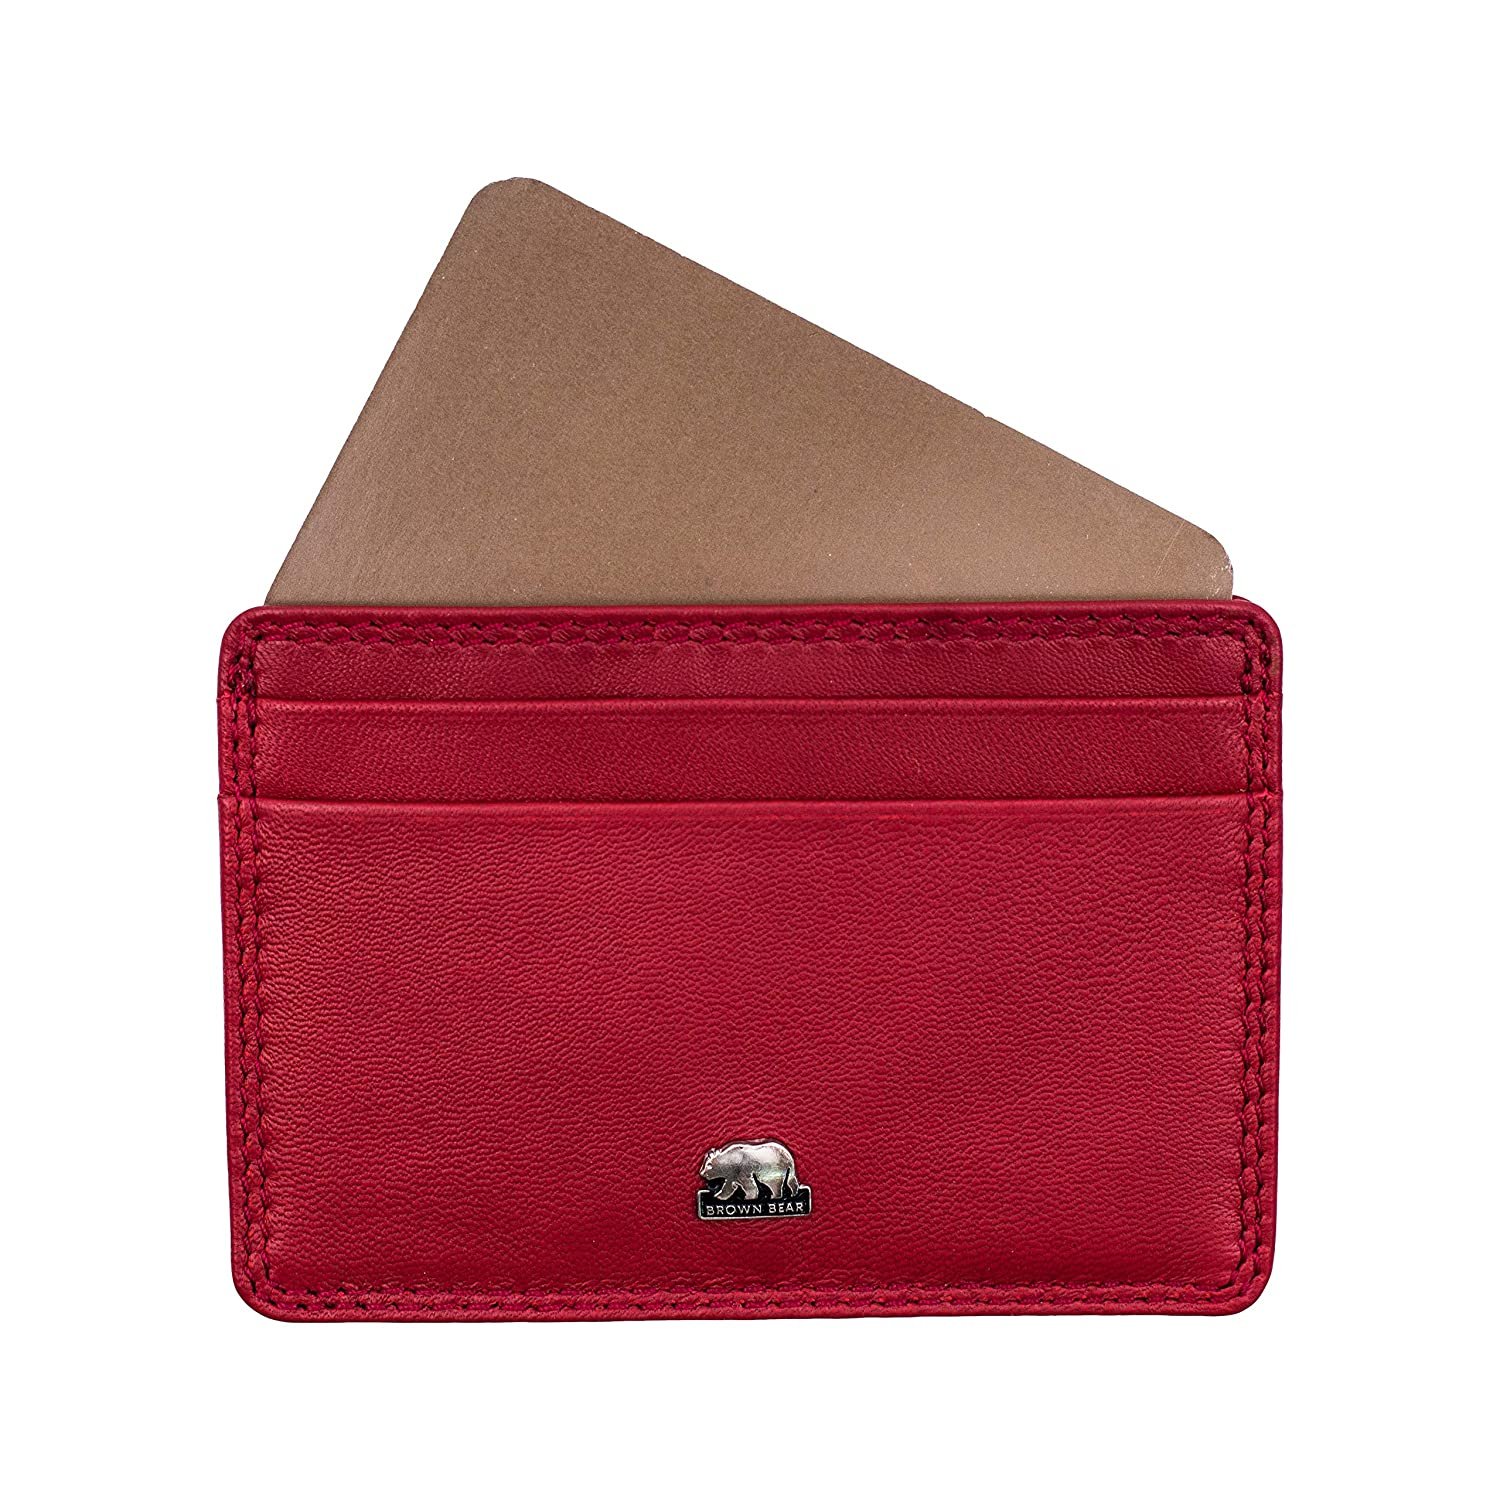 Brown Bear Design Germany Card Holder BBCL CC 4 Red